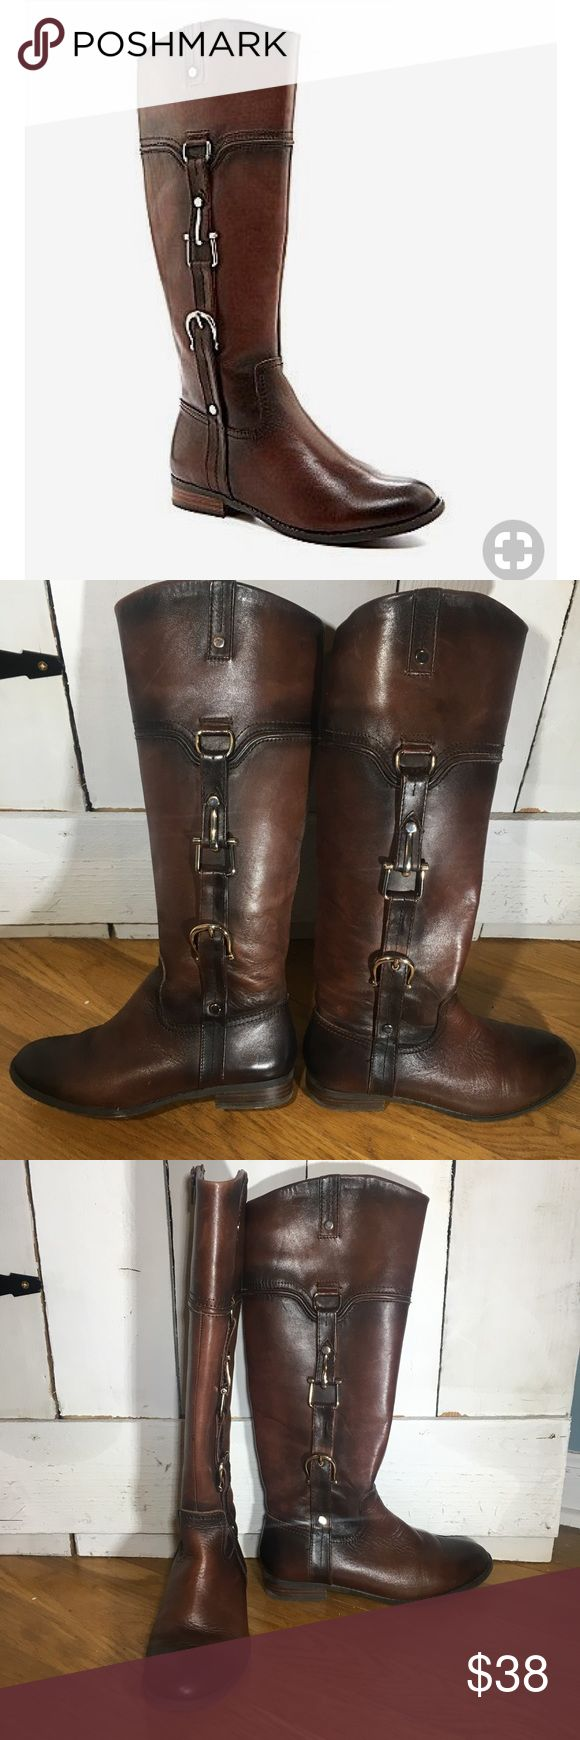 """Michelle D cognac riding boots size 6.5 Michelle D cognac riding boots size 6.5. Excellent condition, 1"""" heel height, gold buckle details, zipper going up inside calf, 16"""" from floor to top of boot (15"""" if you exclude the heel). Color is a brown cognac with weathered oil rubbed effect so toe, heel, and portions of the boot are a bit darker. This is a part of the design. Inside of boot in good condition as well. Michelle D Shoes Combat & Moto Boots"""